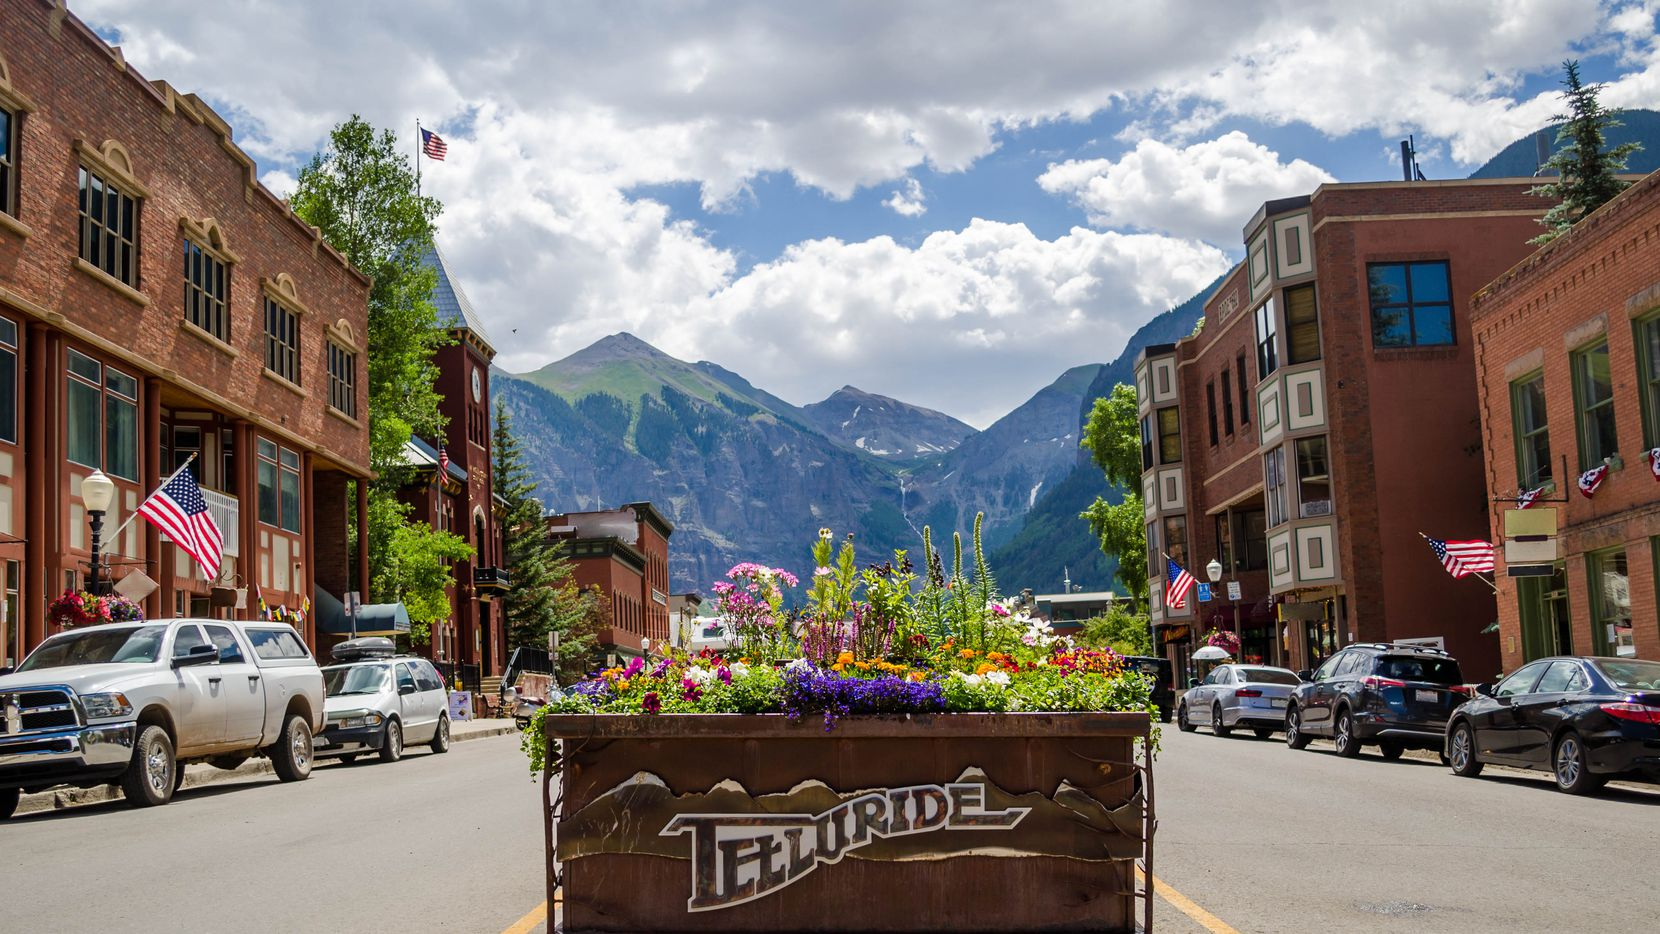 Flower box in the middle of downtown telluride